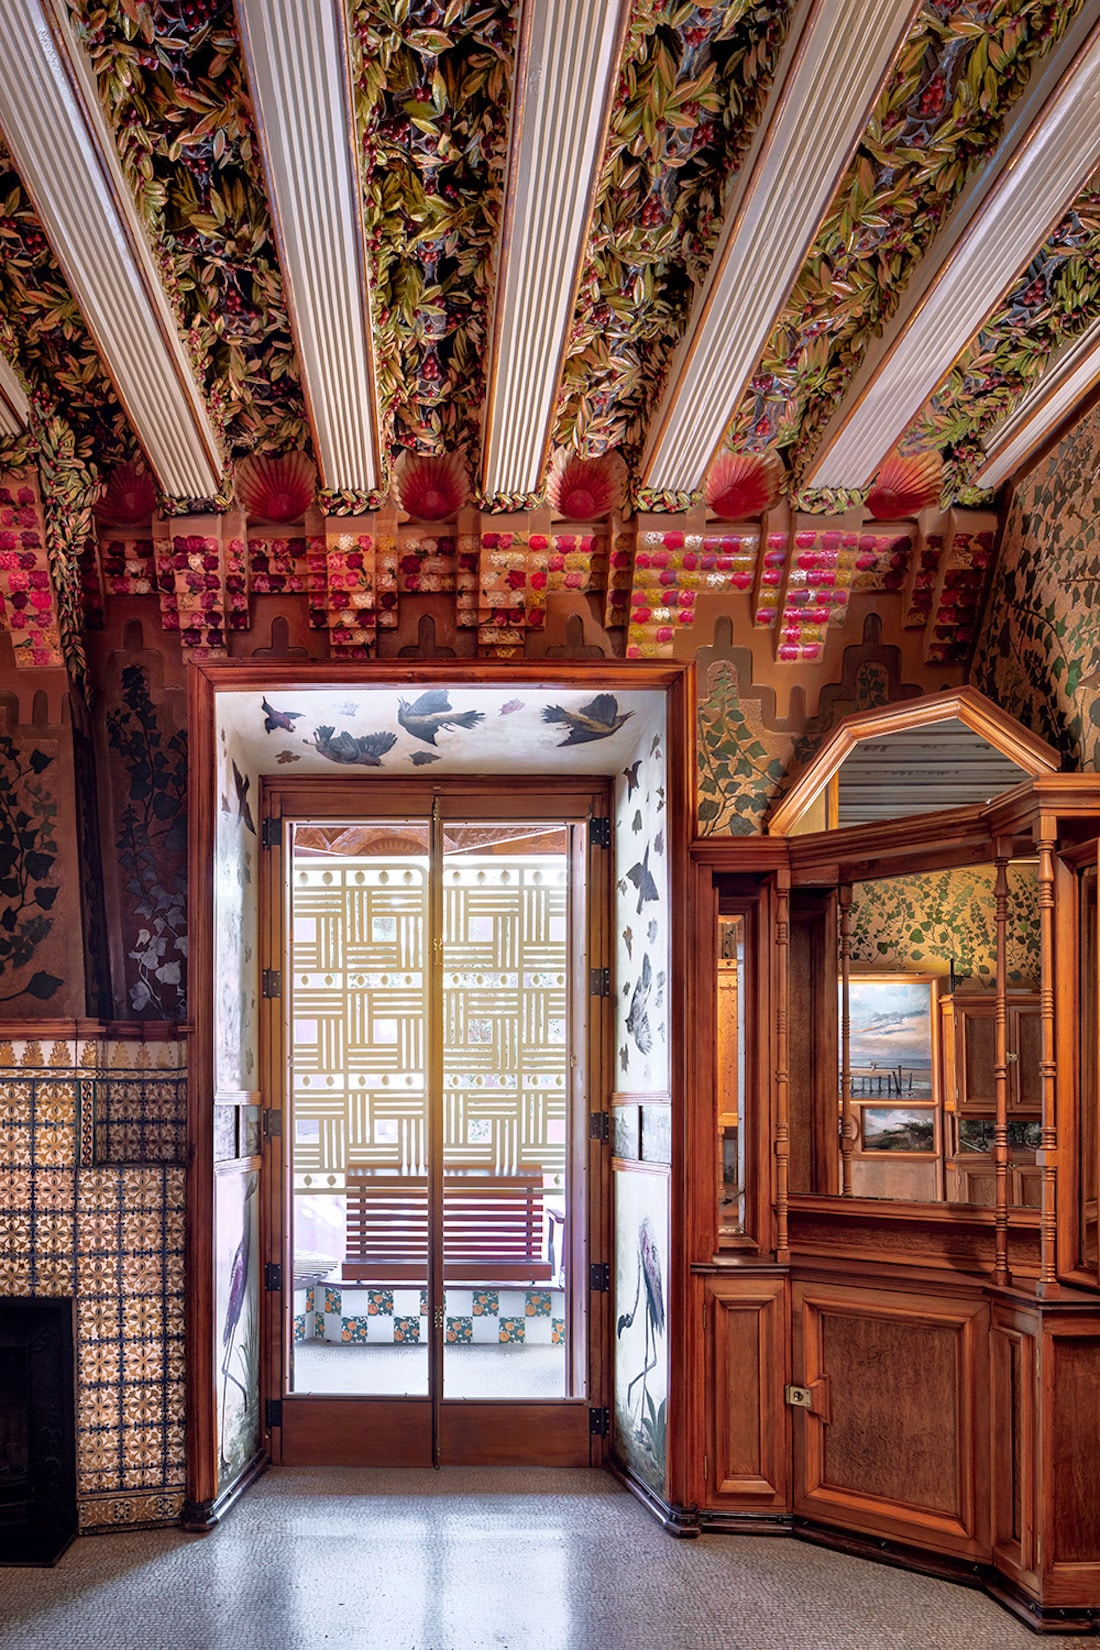 Casa Vicens Photos